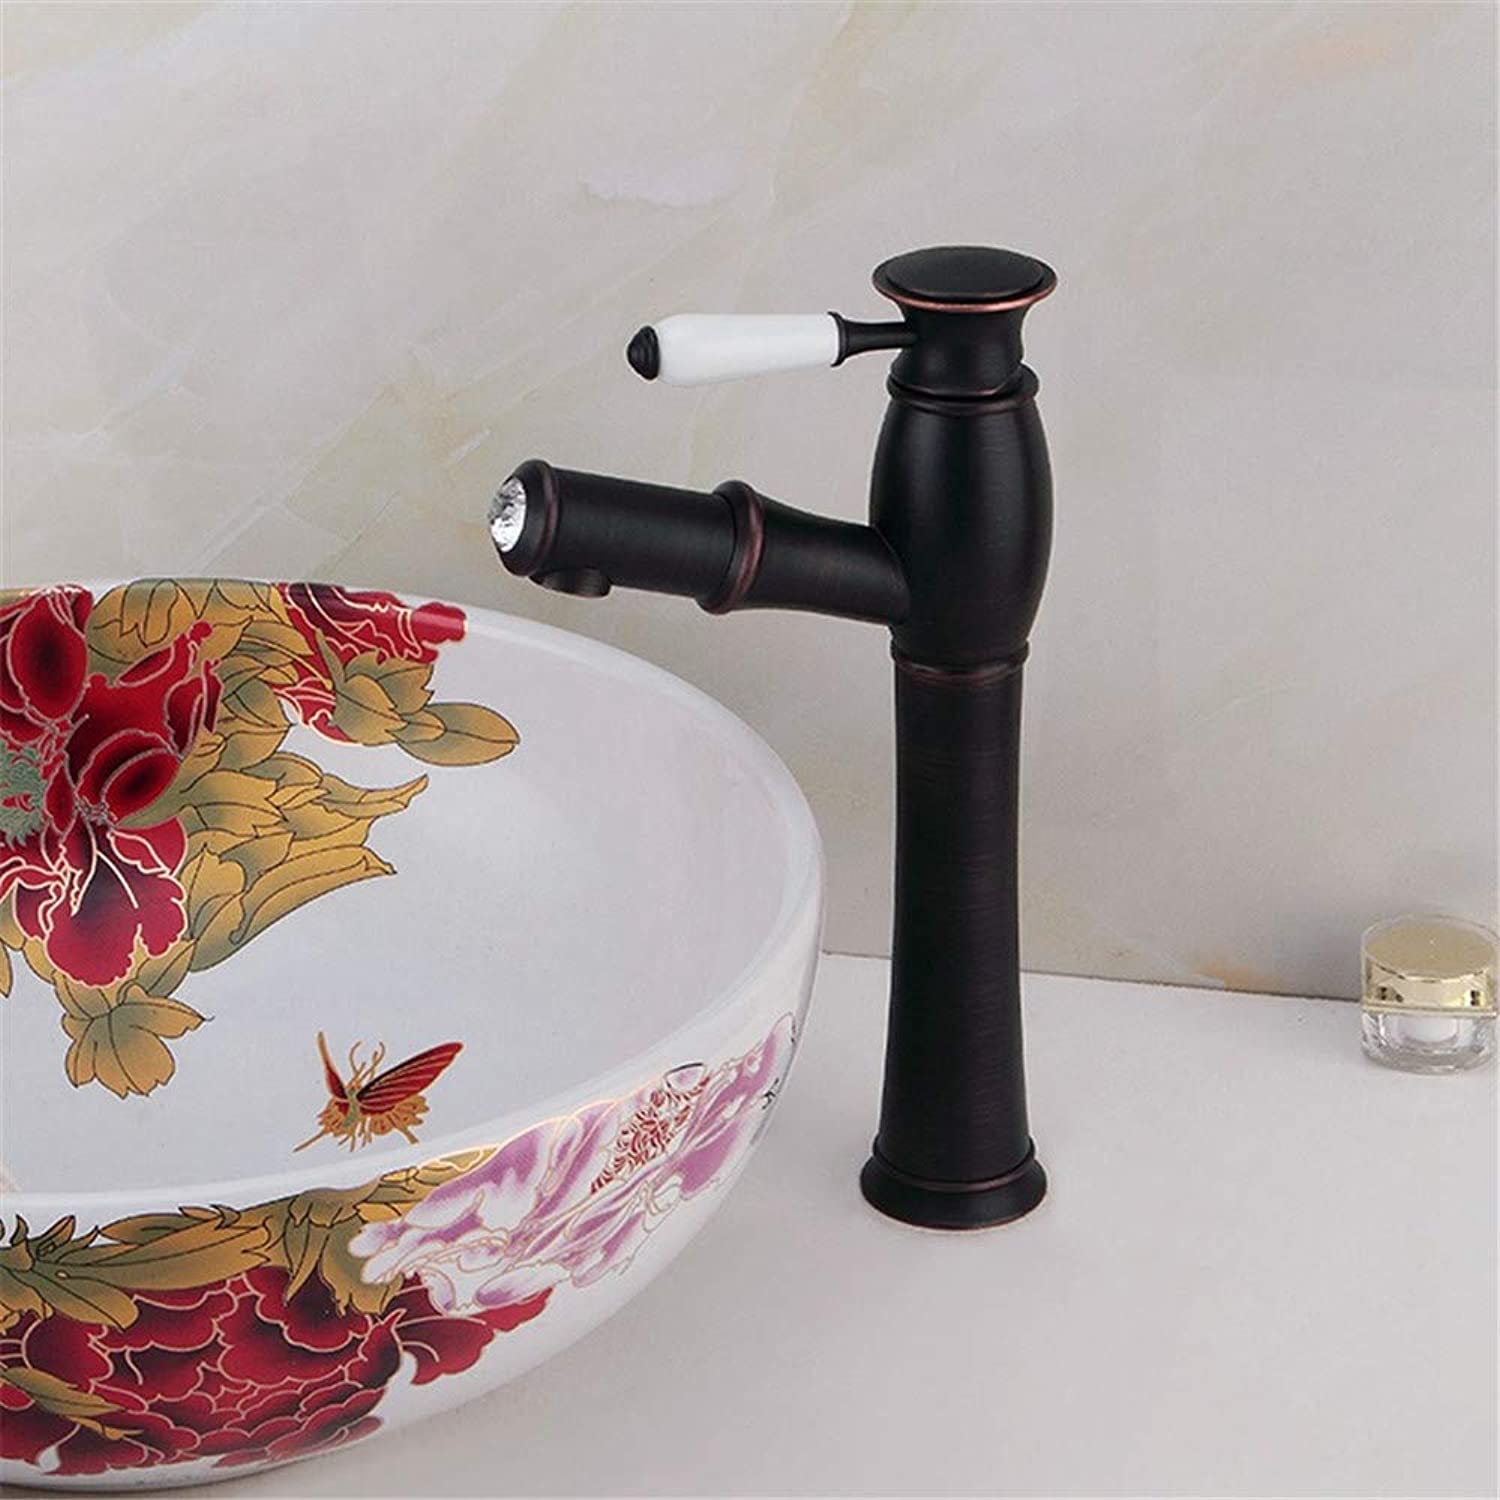 XPYFaucet Faucet Tap Taps All copper black pull hot and cold water basin single hole single handle telescopic